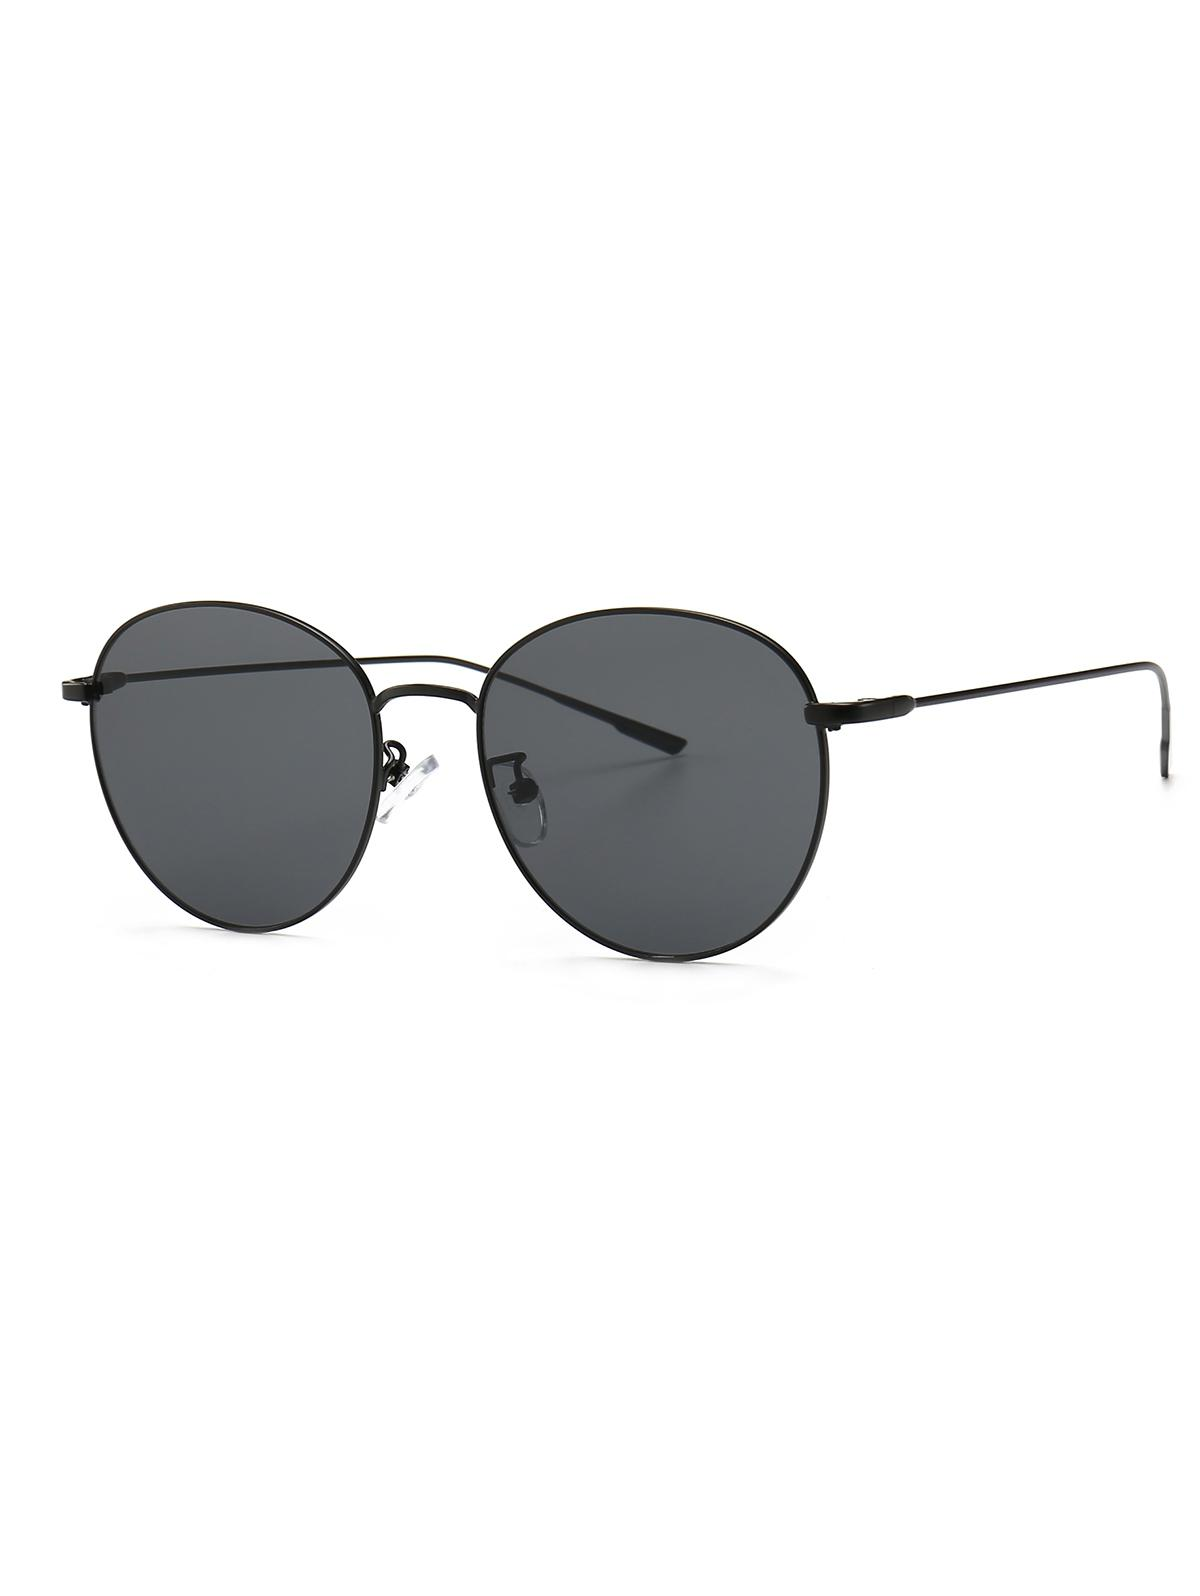 Round Metal Frame Sunglasses, Black